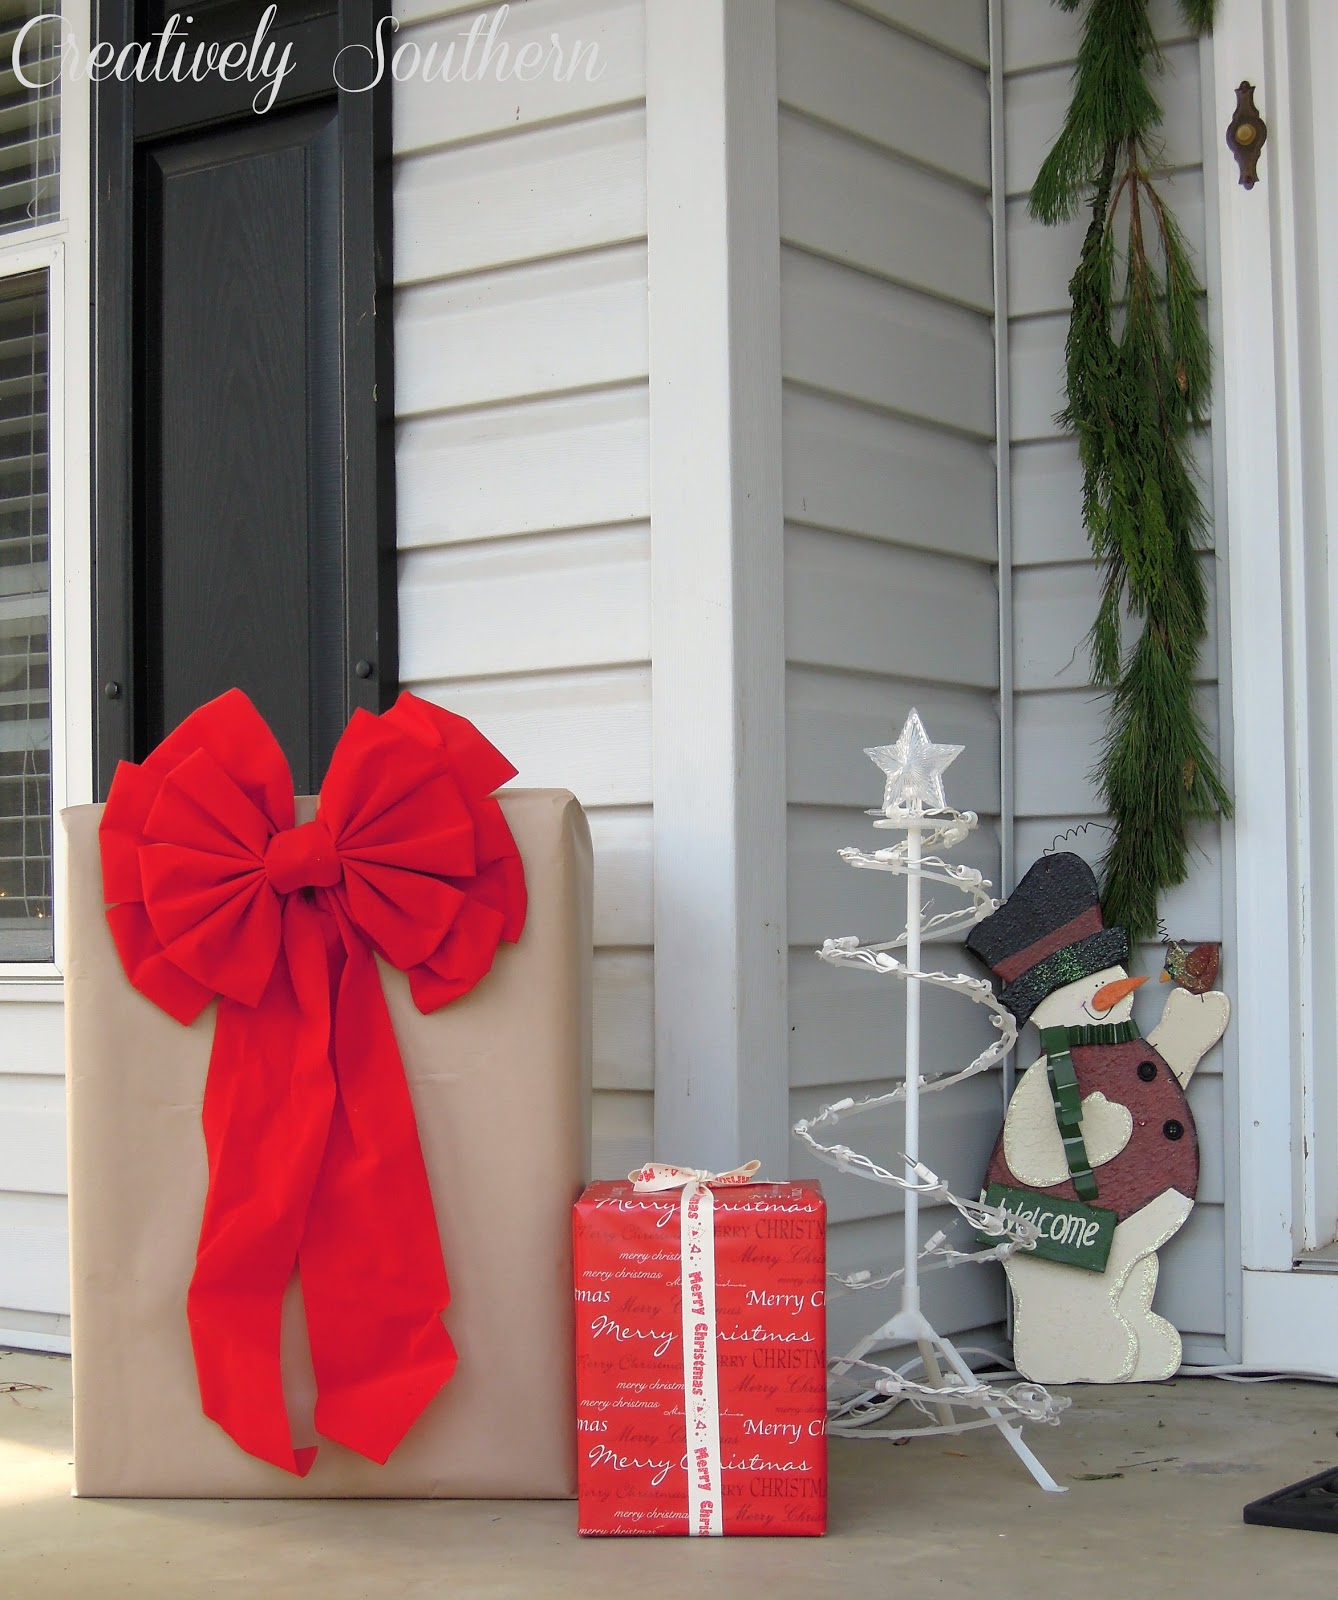 small front porch christmas decorating jpg 1338x1600 small front porch christmas decorating - Decorating A Small Front Porch For Christmas